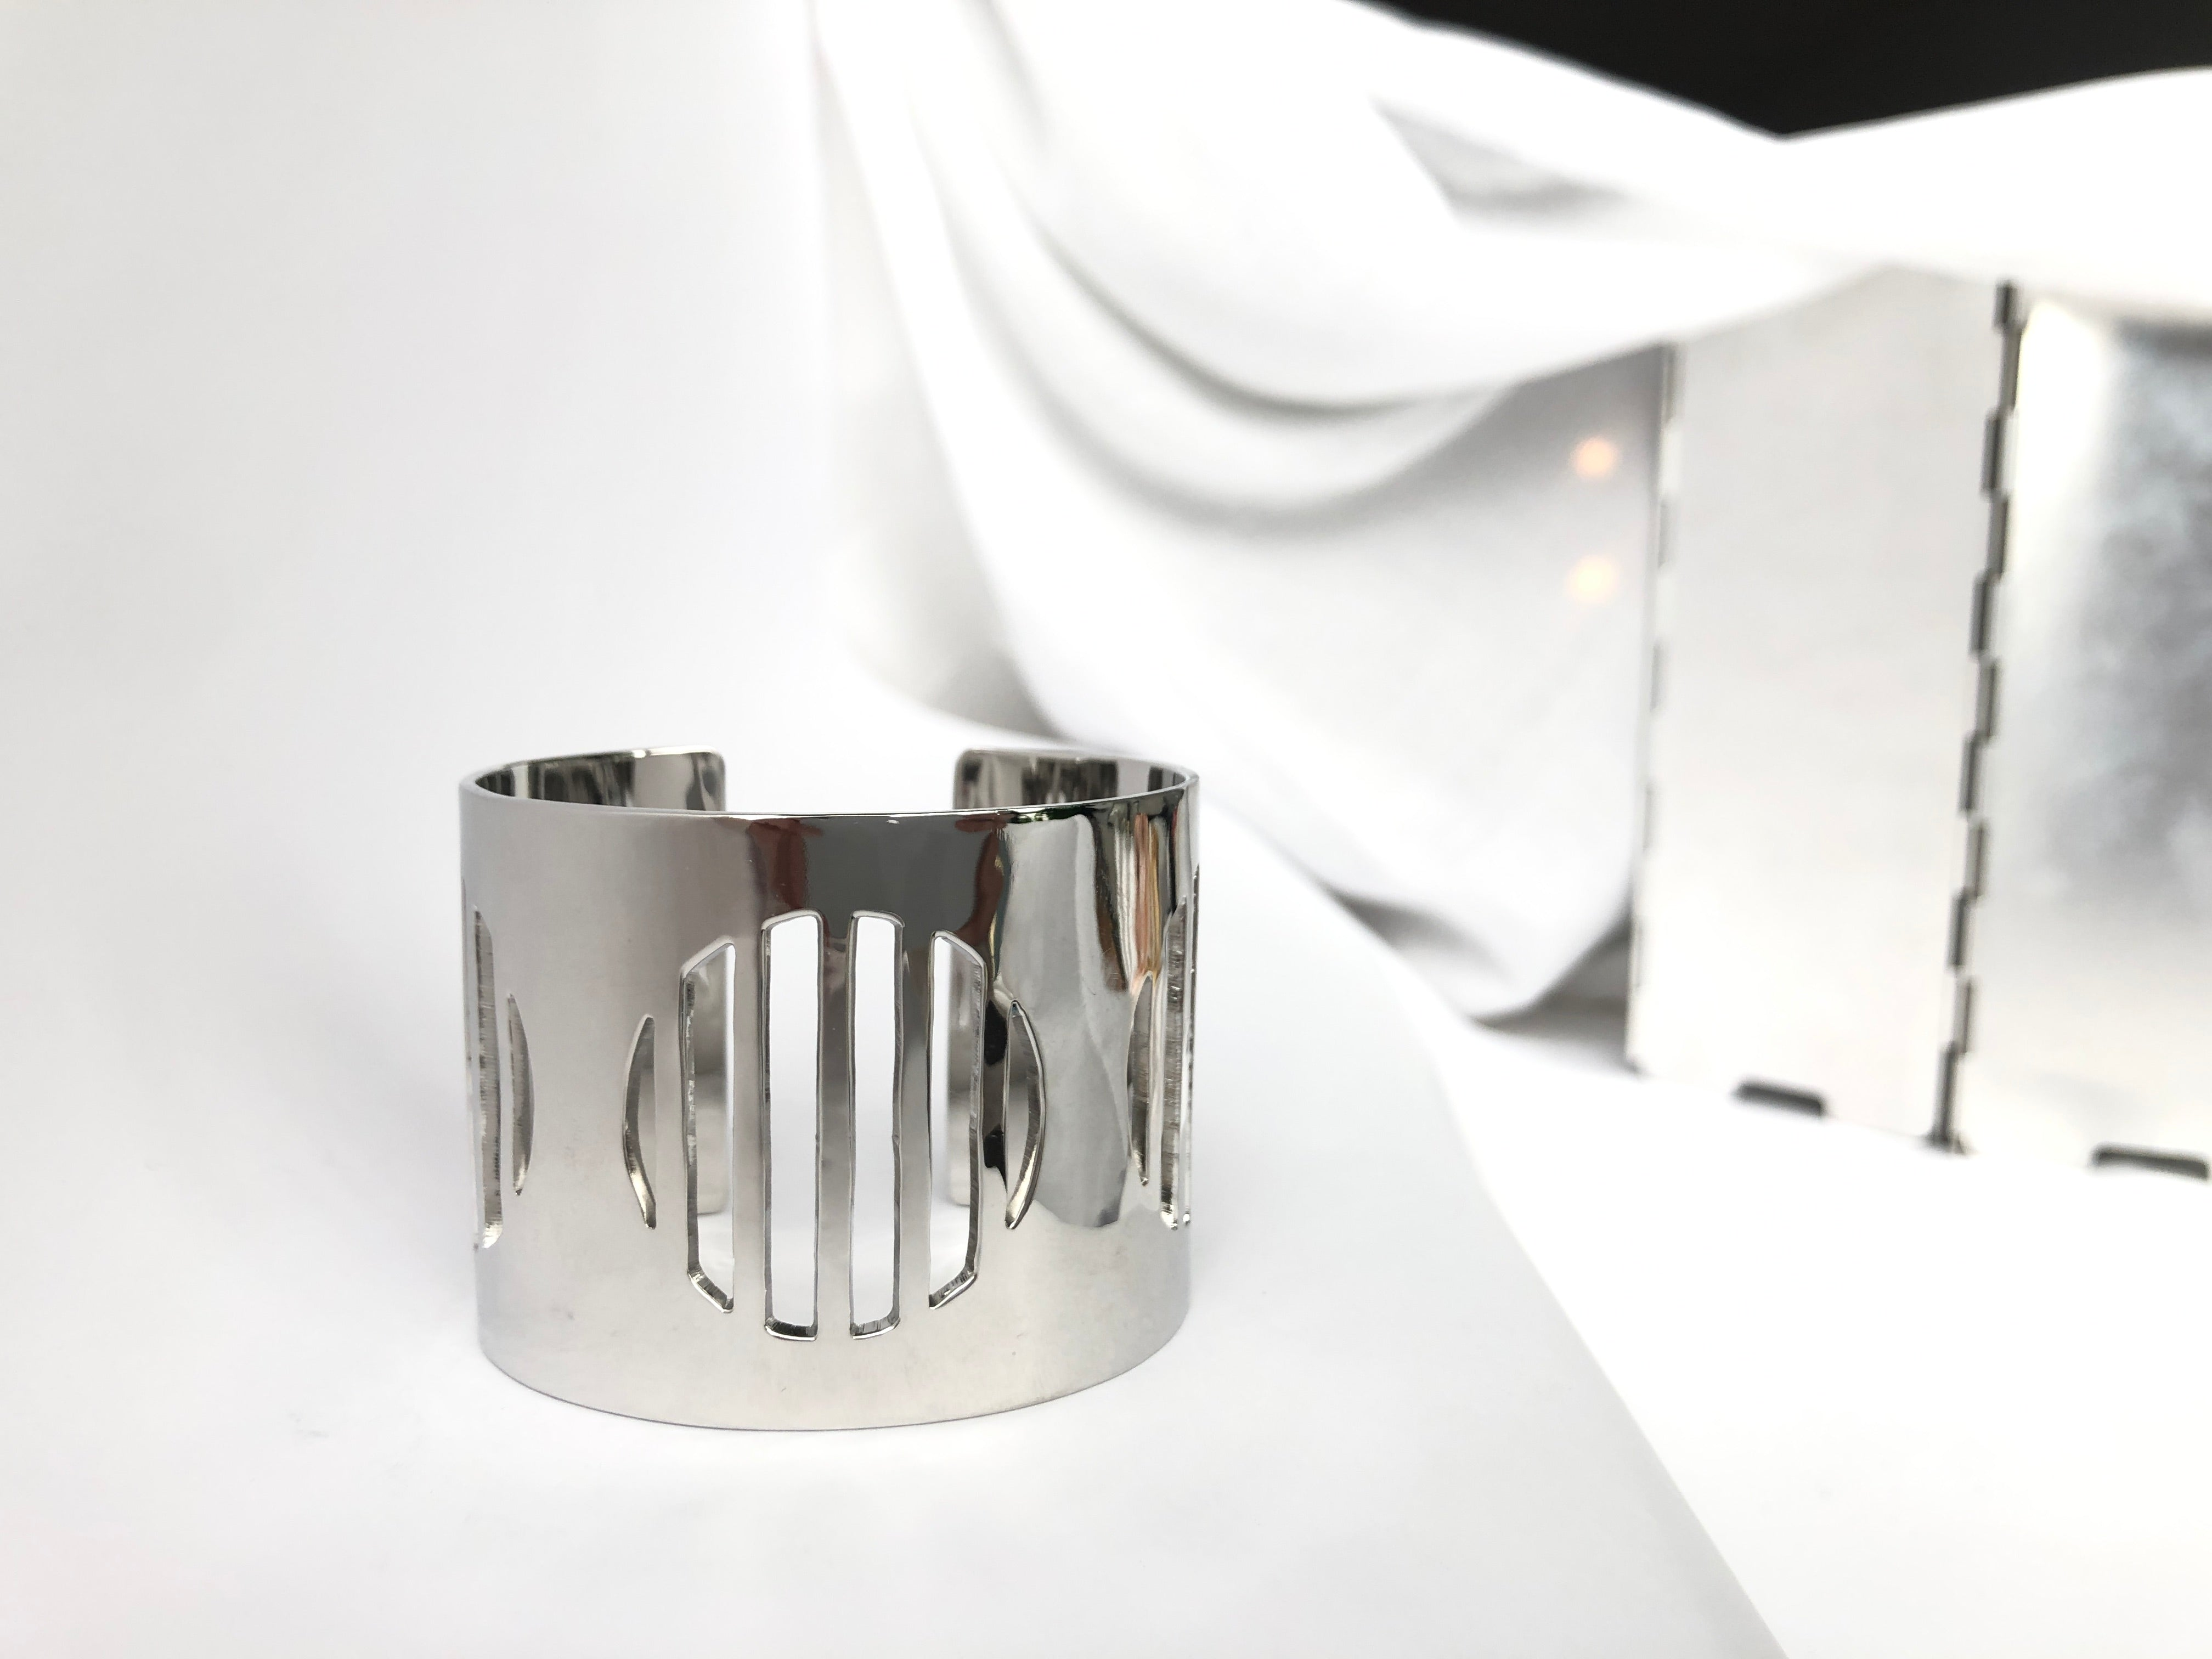 silver sustainable jewellery recycled rings cuffs bracelets ethical accessories women